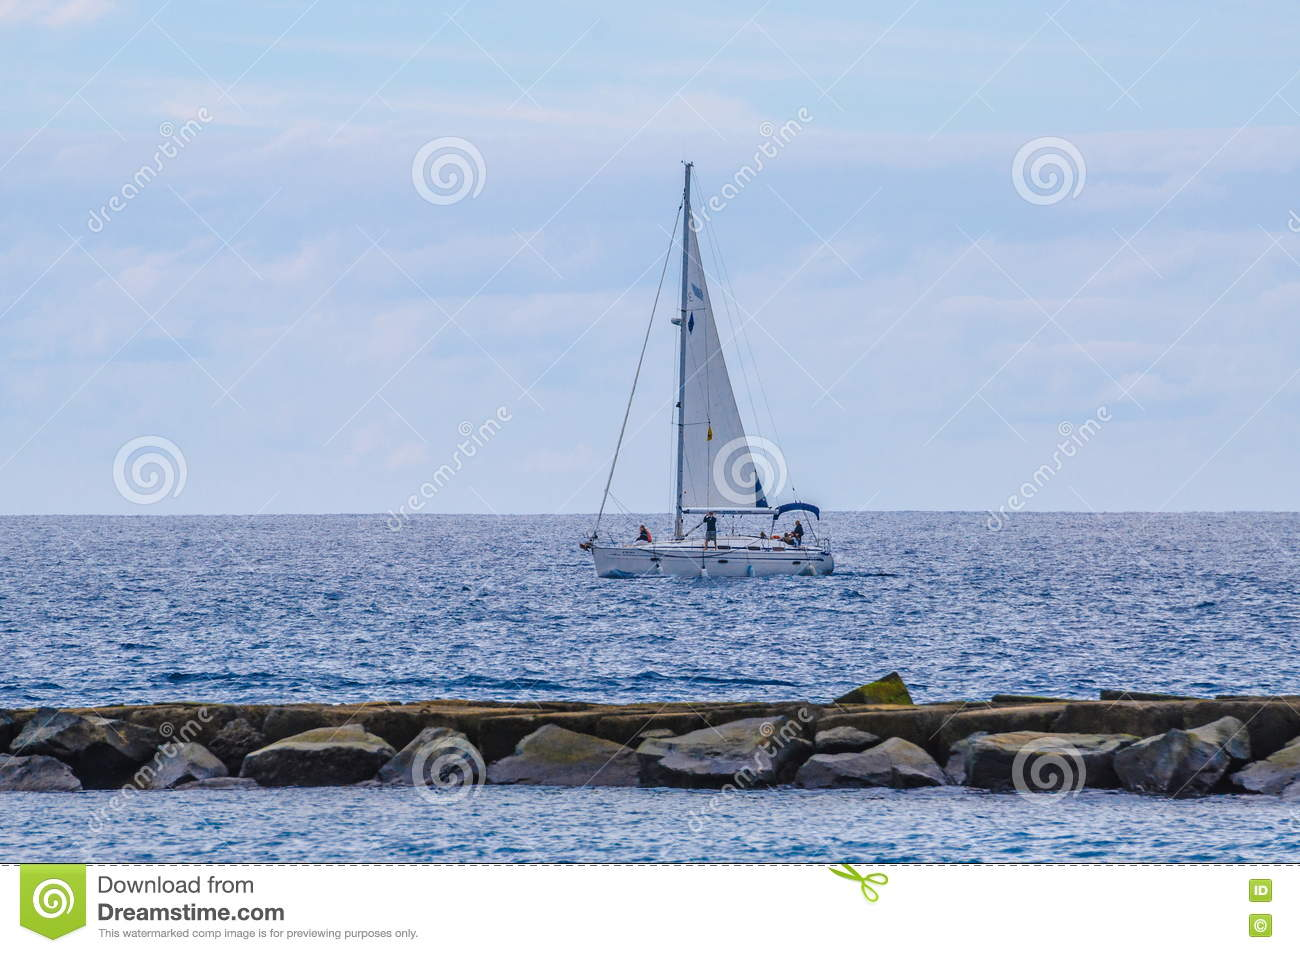 Sailing ship yachts with white sails in the open Sea. Luxury boa